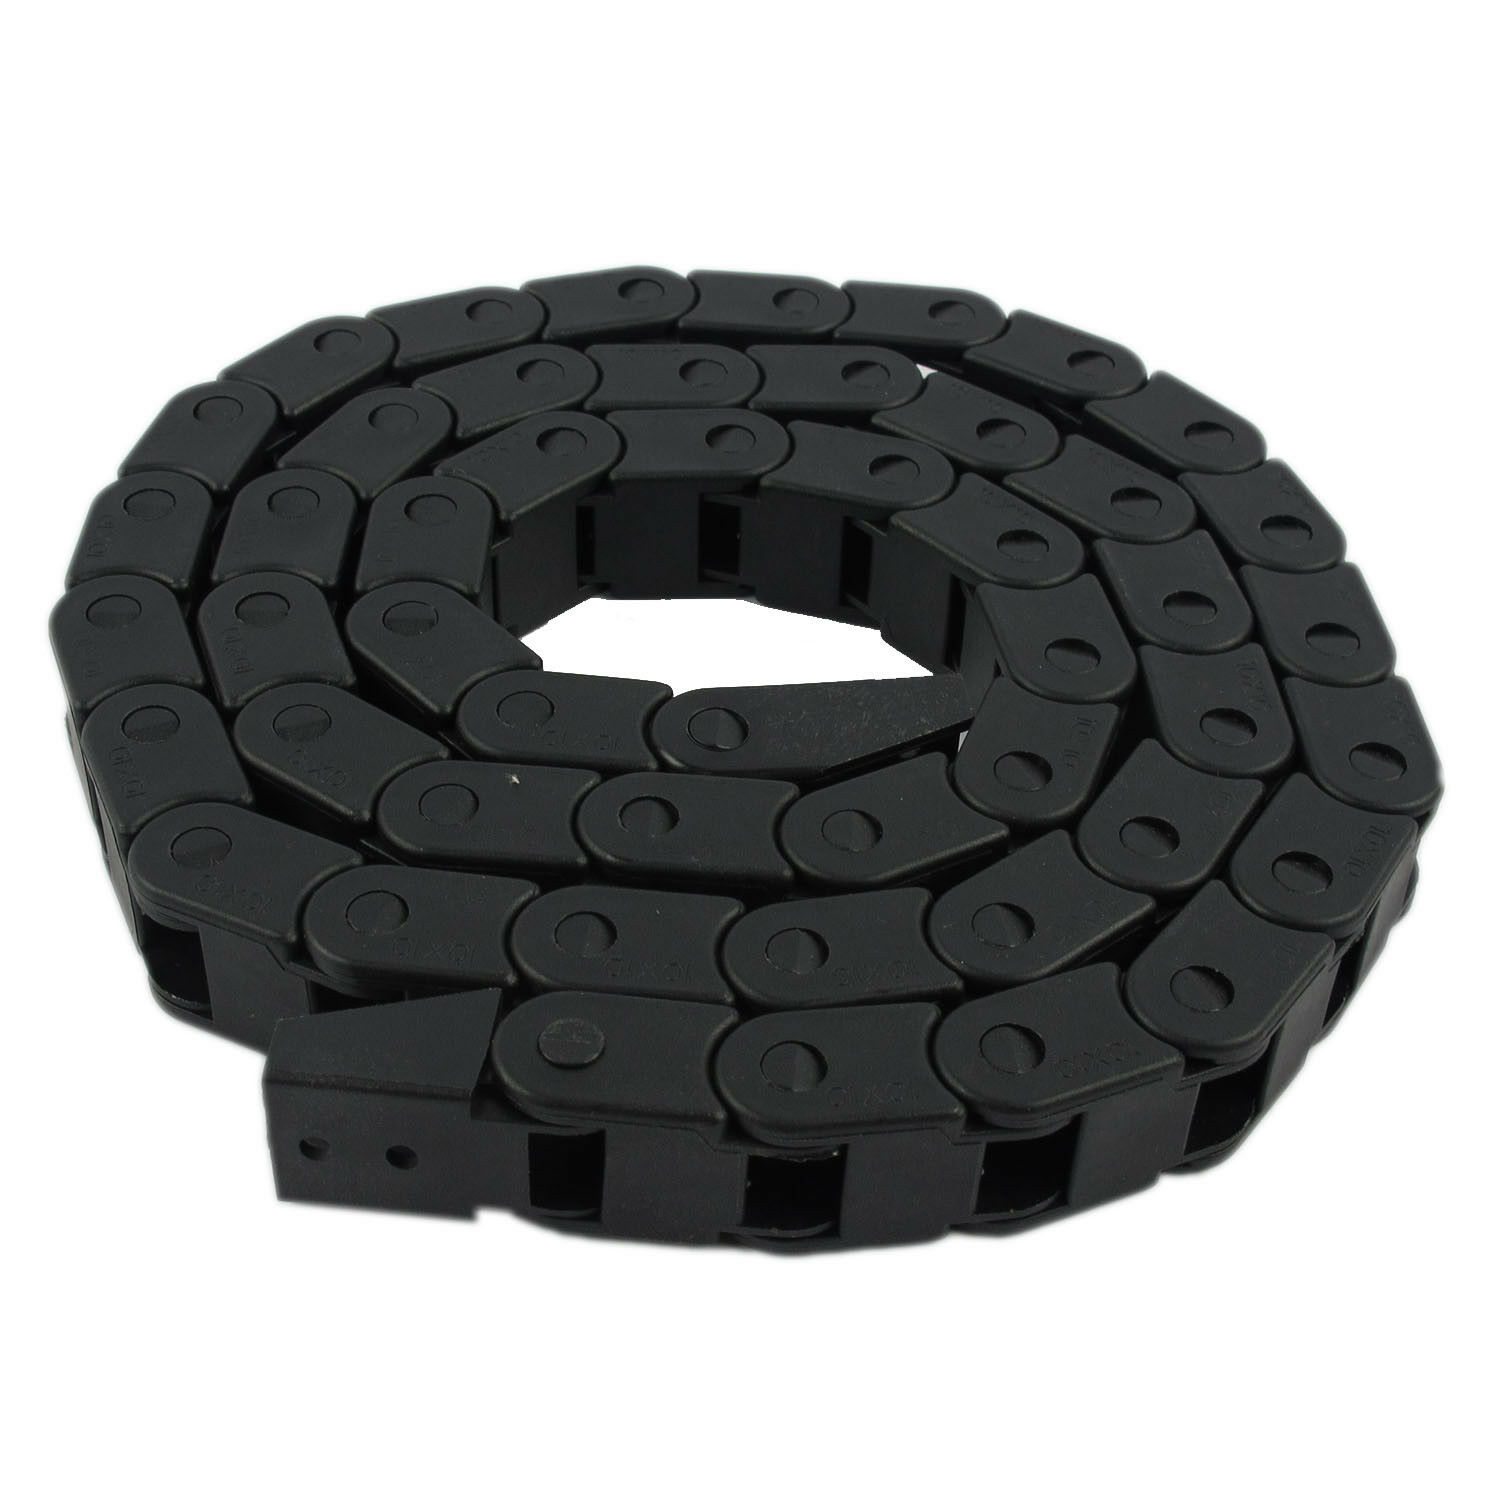 Cable Drag Chain Black R28 1000mm//40 Long Plastic Flexible Nested Nylon Cable Drag Chain Wire Carrier for for Electrical Machines